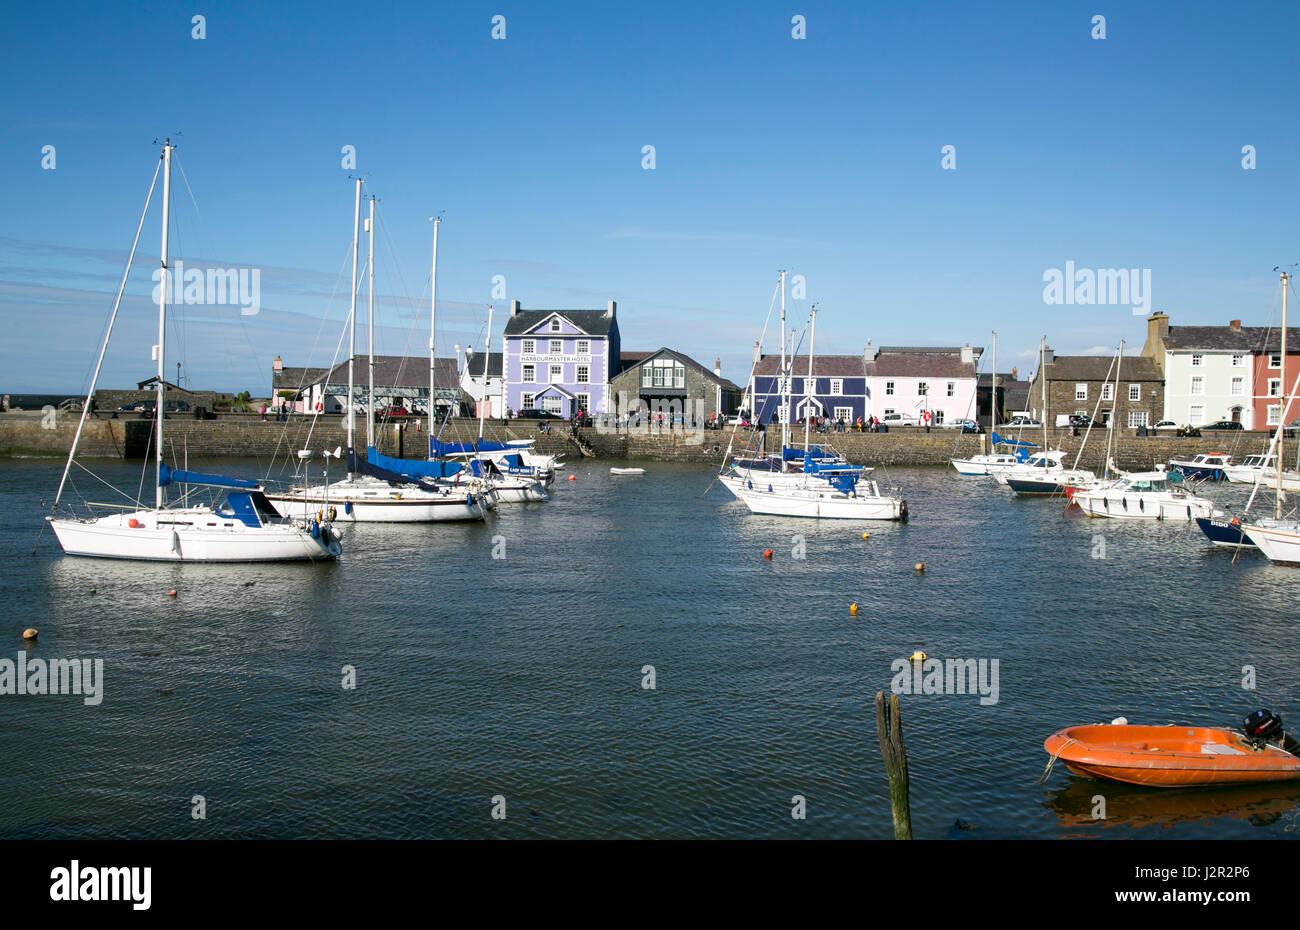 The charming Georgian port town of Aberaeron on the Cardigan Bay Coast, Ceredigion, West Wales with sailing boats - Stock Image